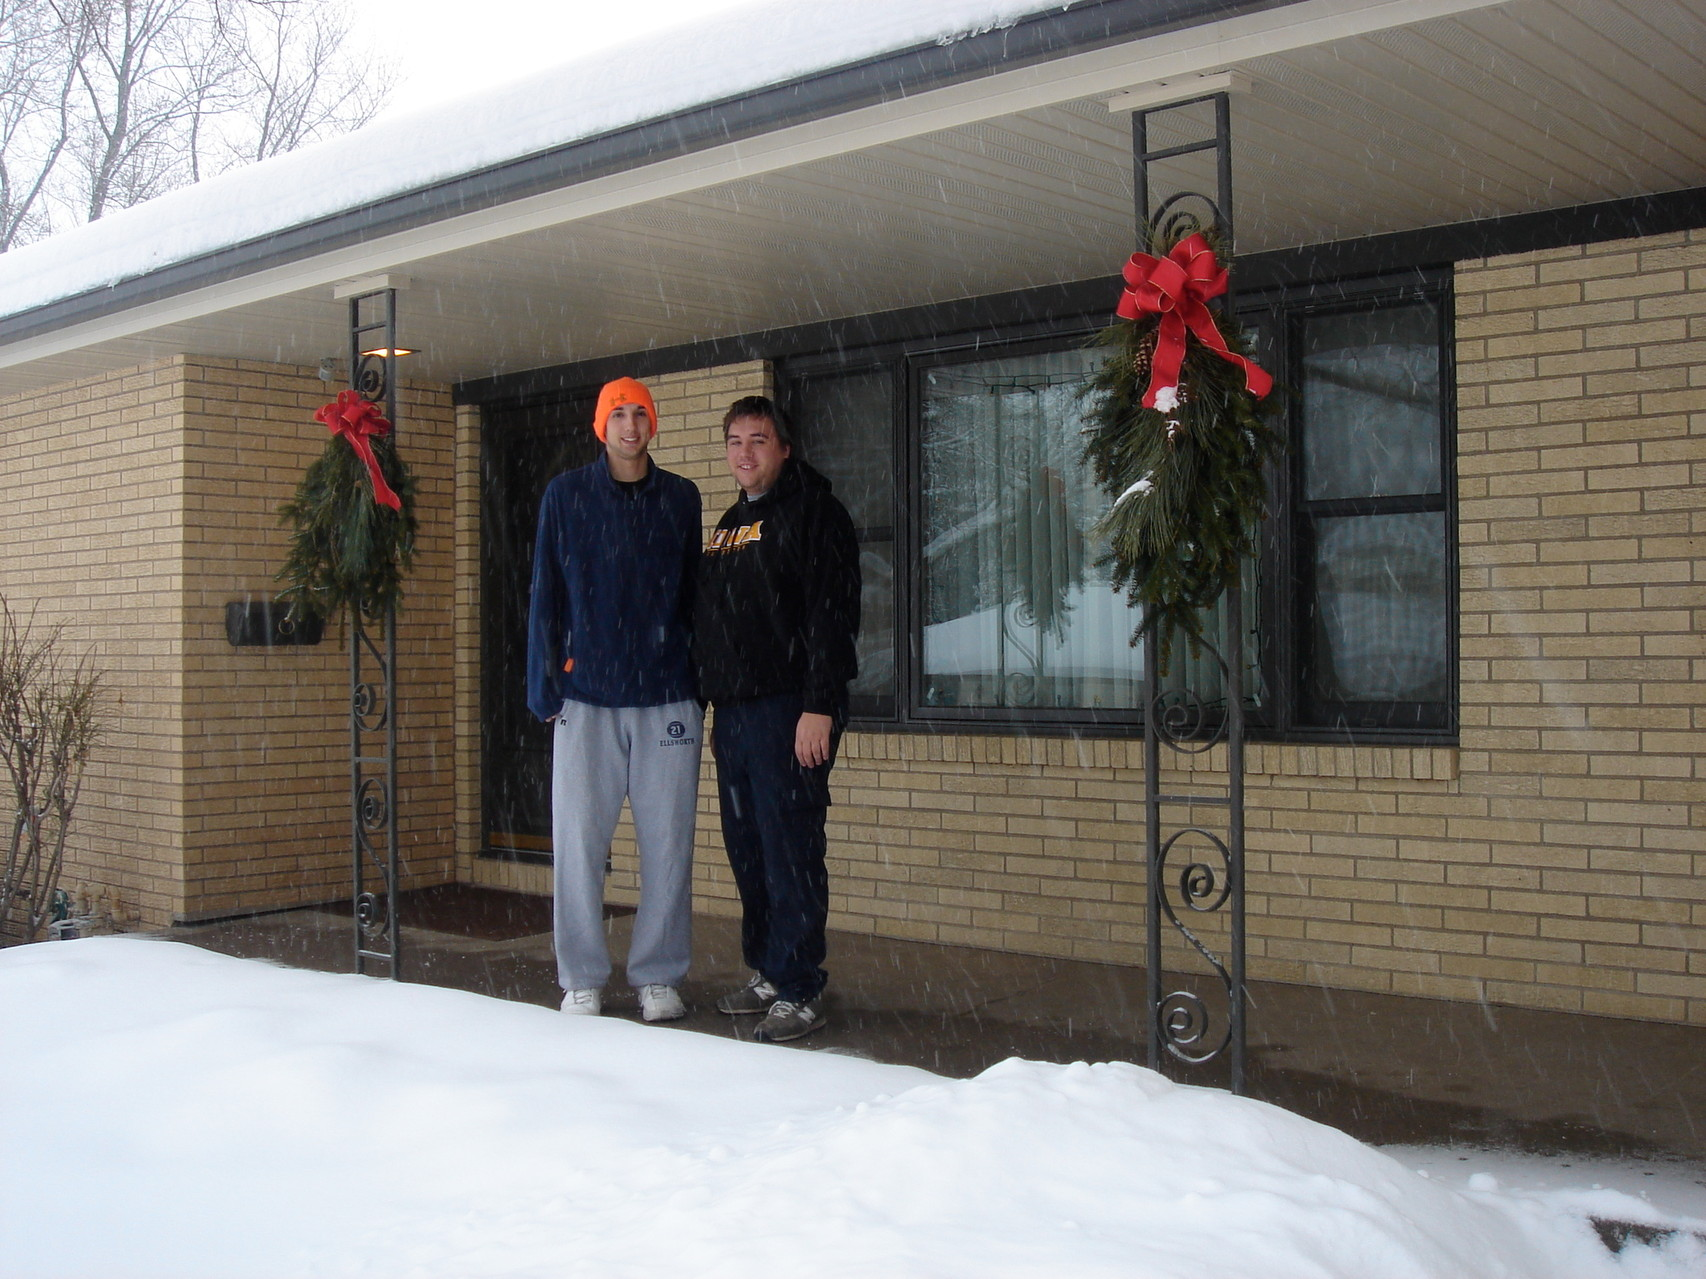 Nick & Greg, Dubuque, Iowa 2010